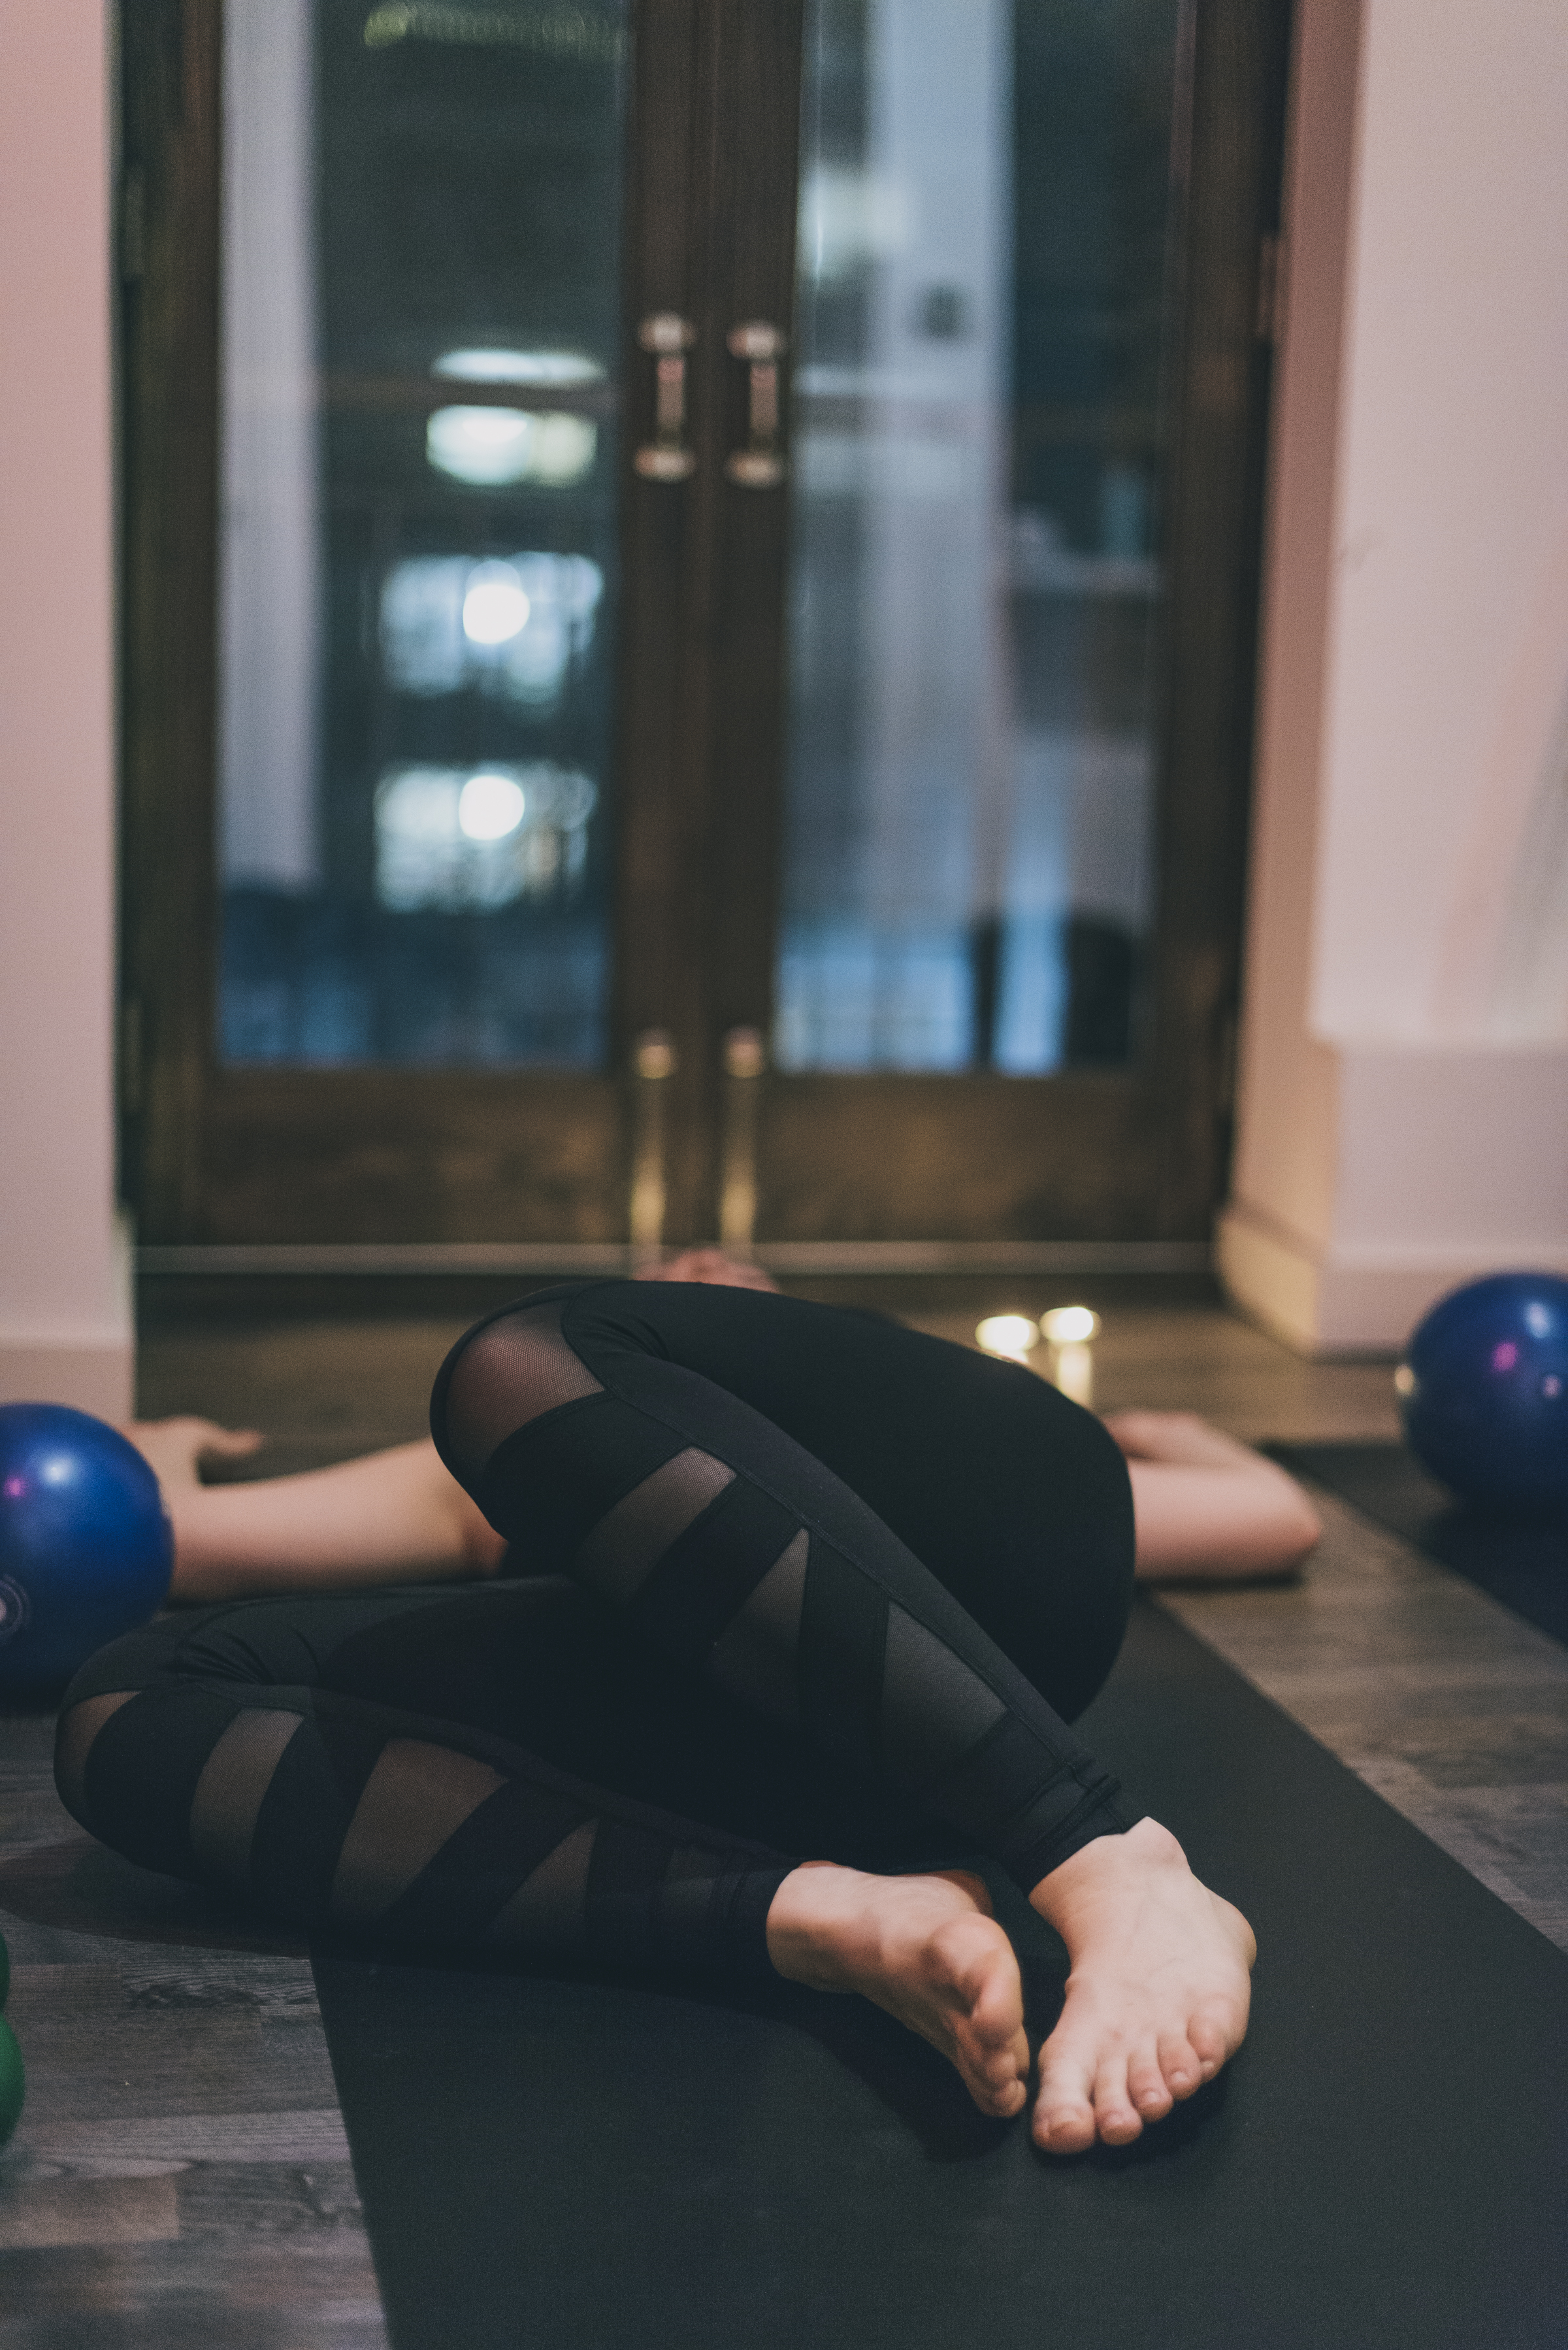 heartbreak hotel - sadness, curated.90 minutes of #selfcare45 minutes of indulgent restorative yoga poses set to an atmospheric playlist - followed by 45 minutes of soul affirming pilates movement set to songs that will bring you back to your best lifego ahead, cry your feelings outpilates sequences inspired by Misfit Method - Get Lifted